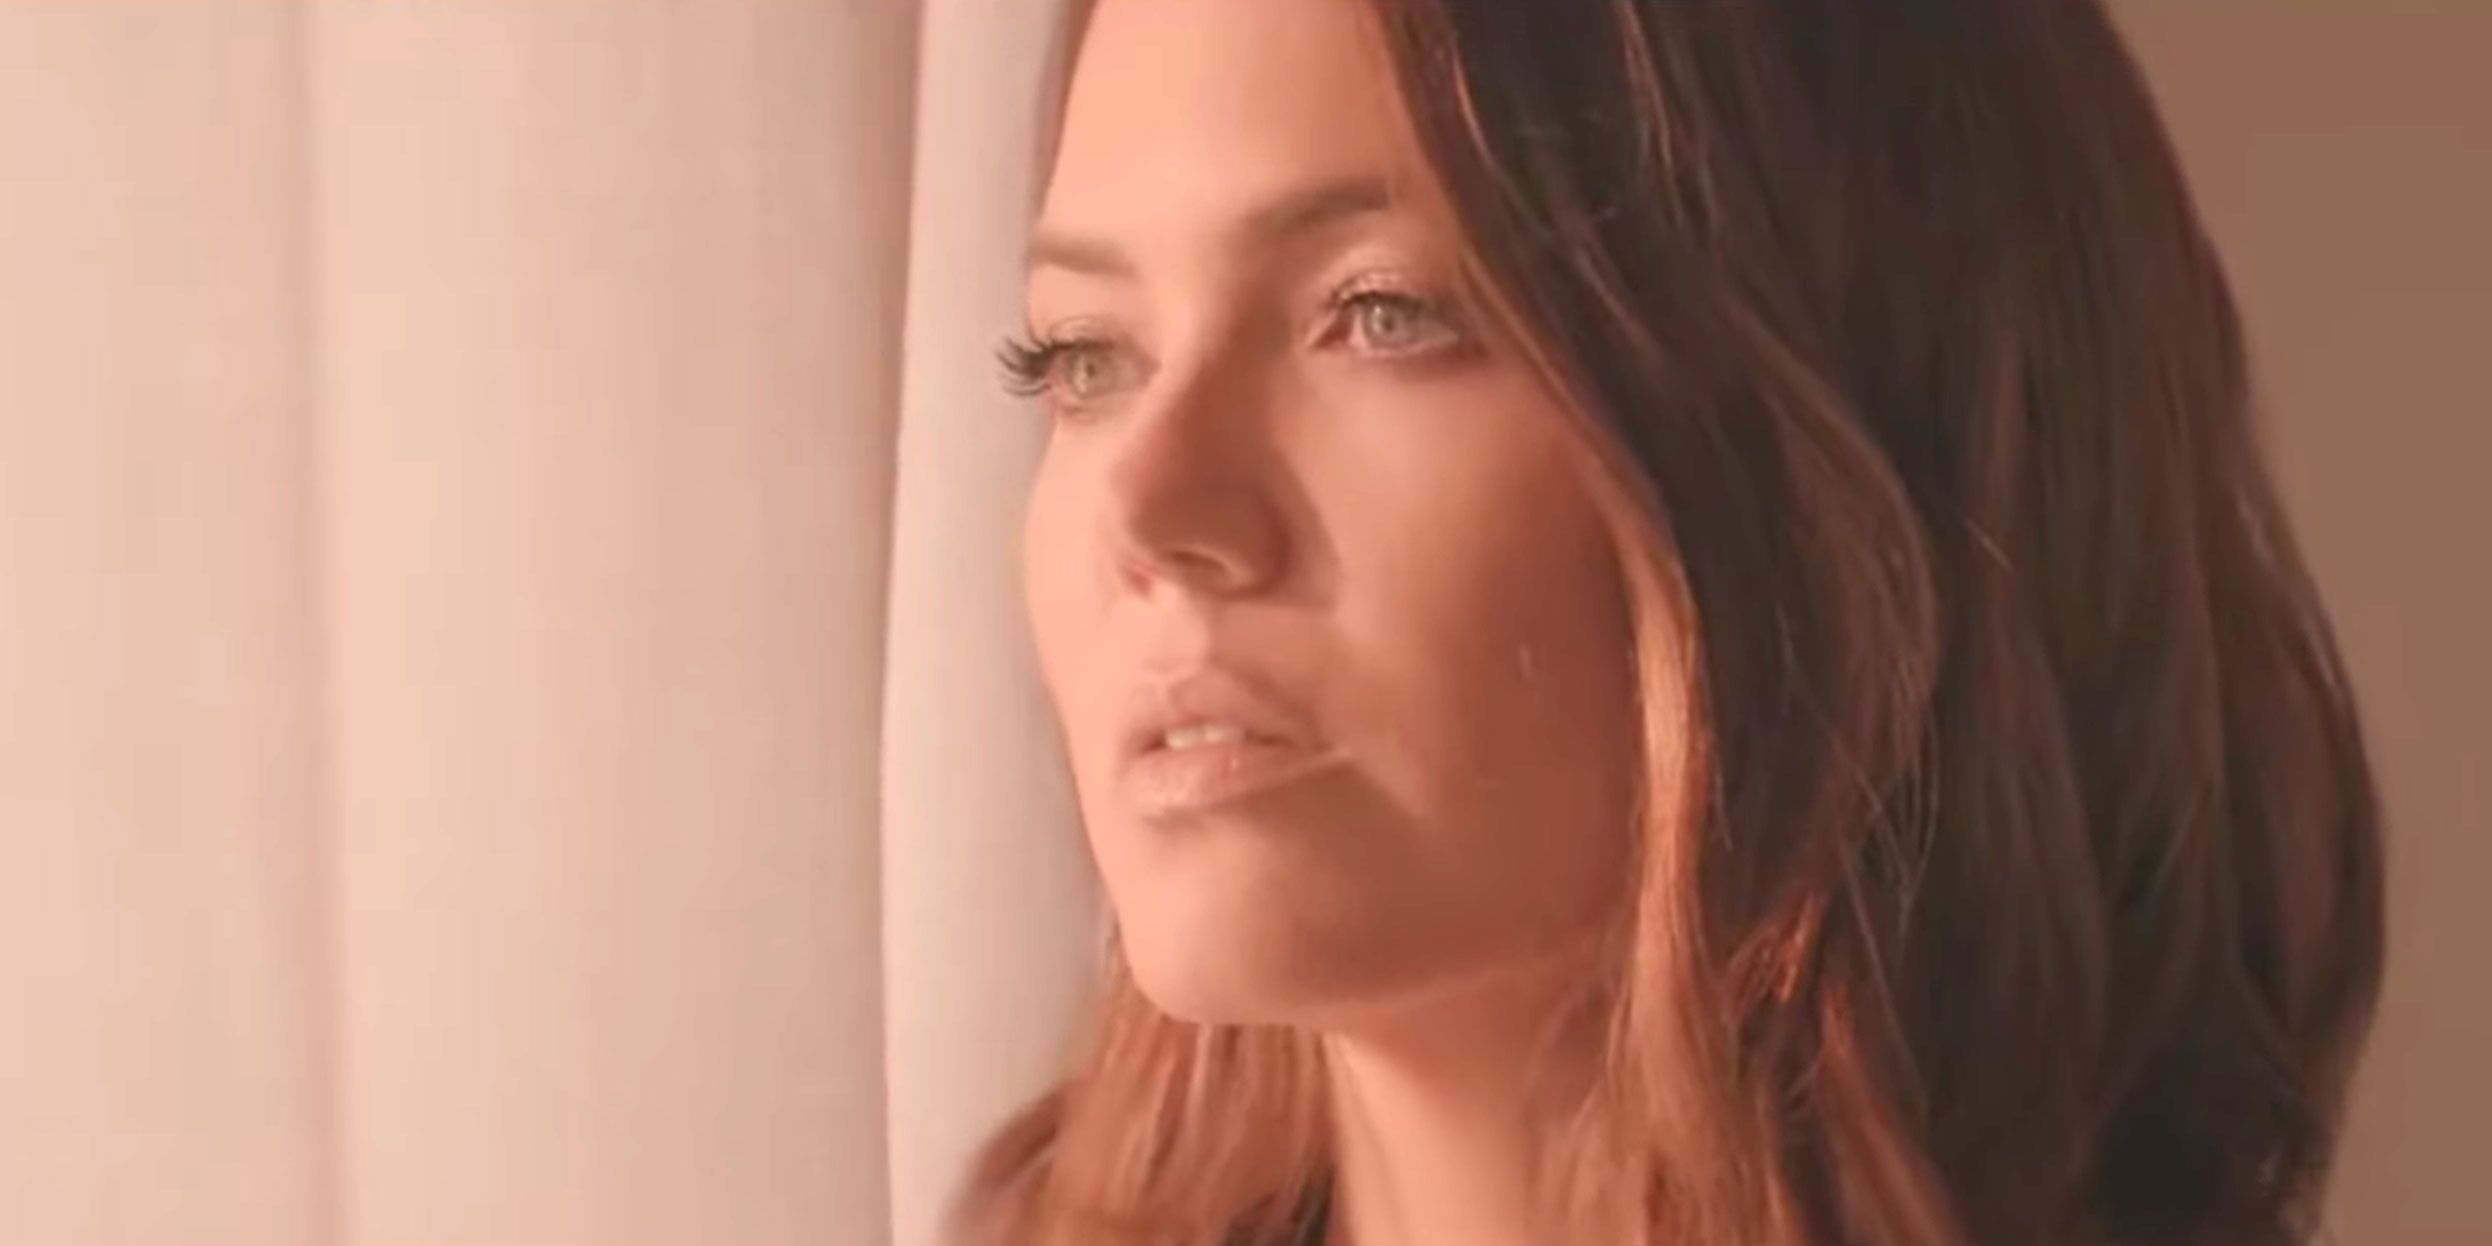 Mandy Moore's New Song 'When I Wasn't Watching' Explores Painful Self-Discovery